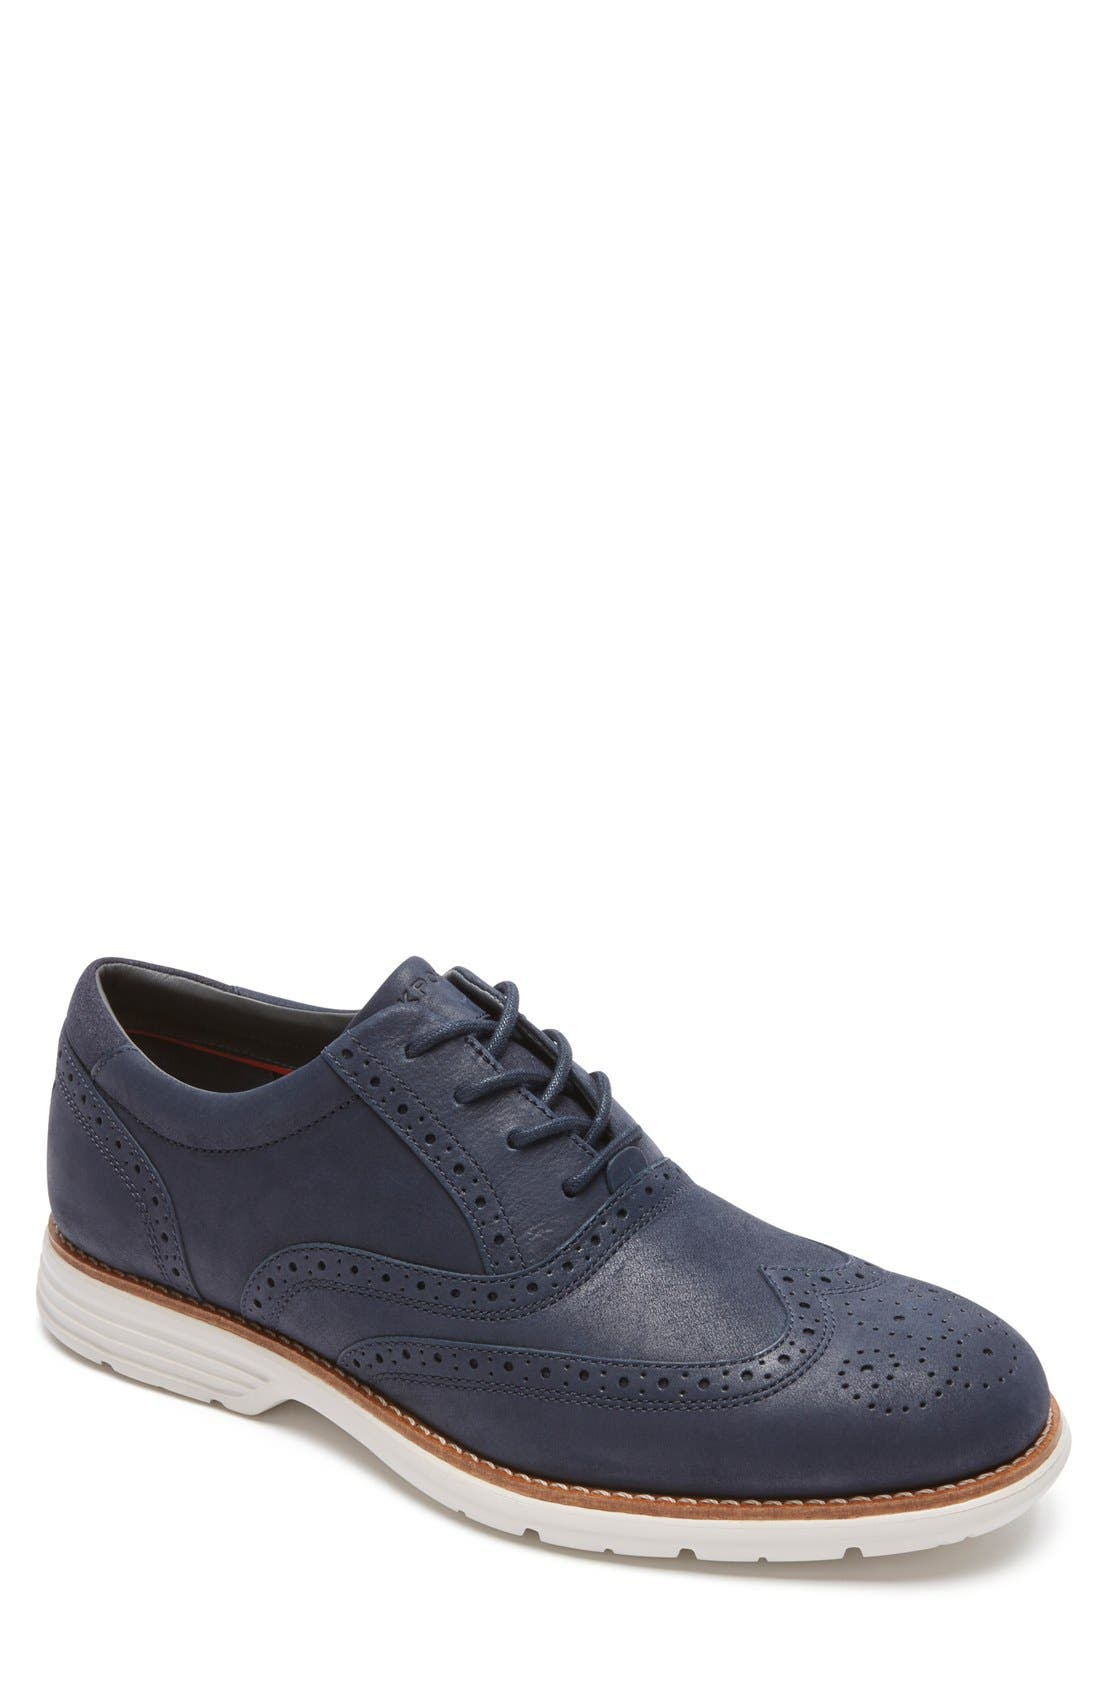 Total Motion Fusion Wingtip,                         Main,                         color, New Dress Blues